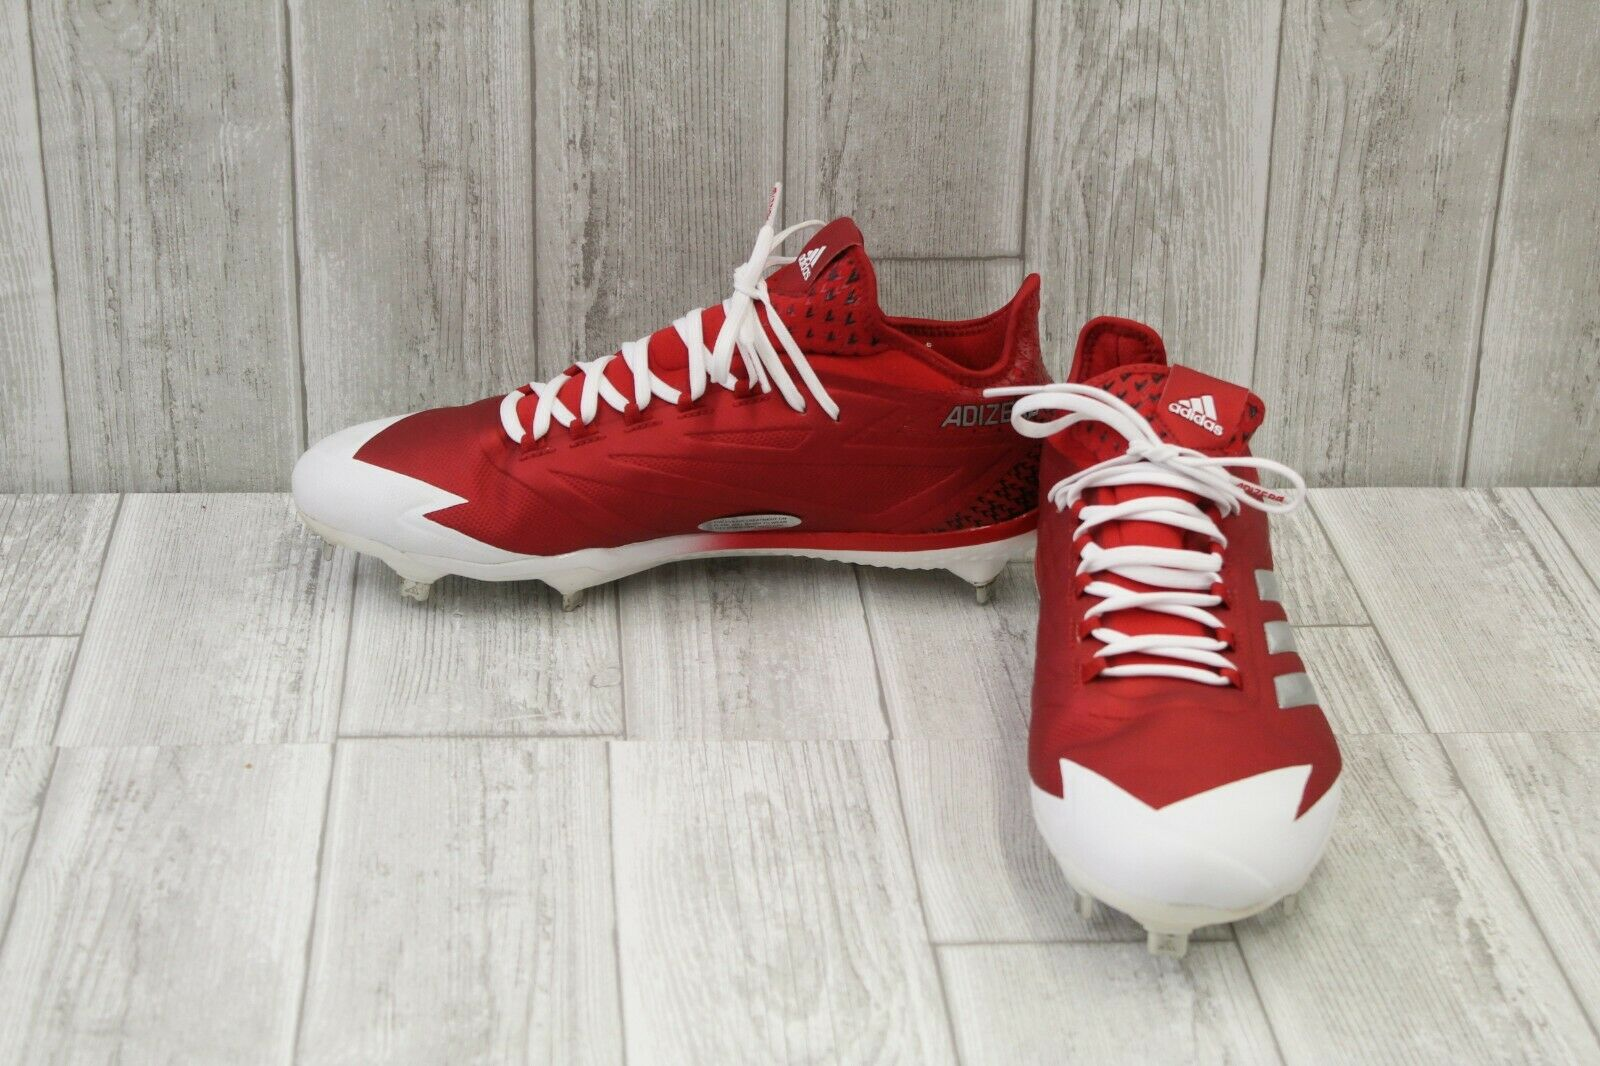 Adidas Adizero Afterburner 4 Baseball Cleats, Men's Size 13, Red White